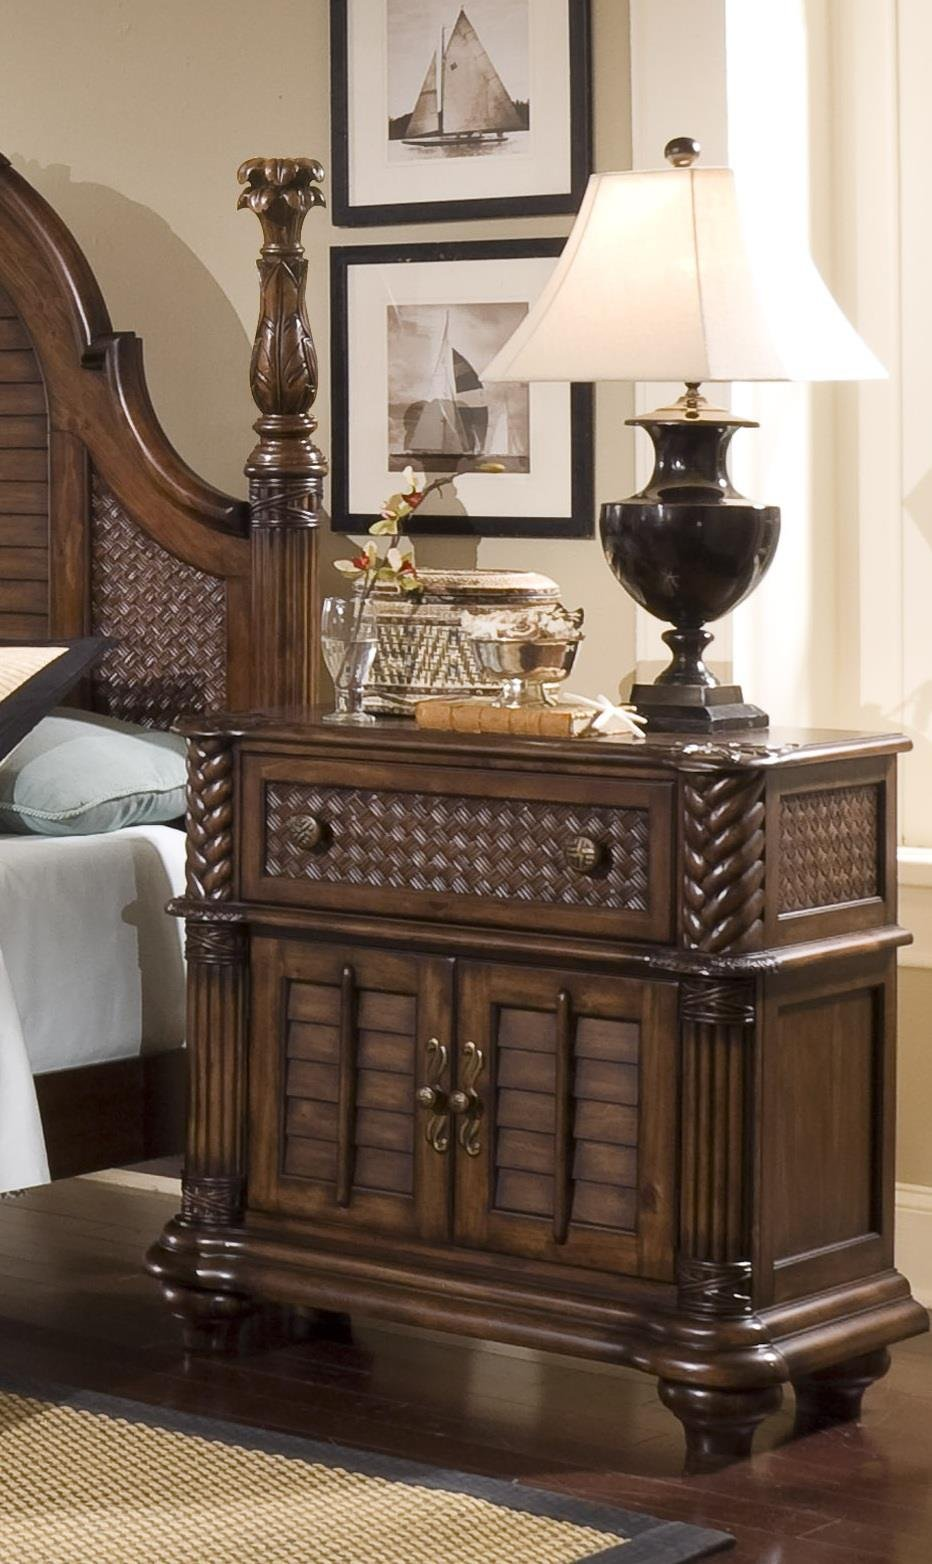 Progressive Furniture P142-45 Palm Court II Bedside Chest Nightstand, 37 x 18 x 35, Brown by Progressive International